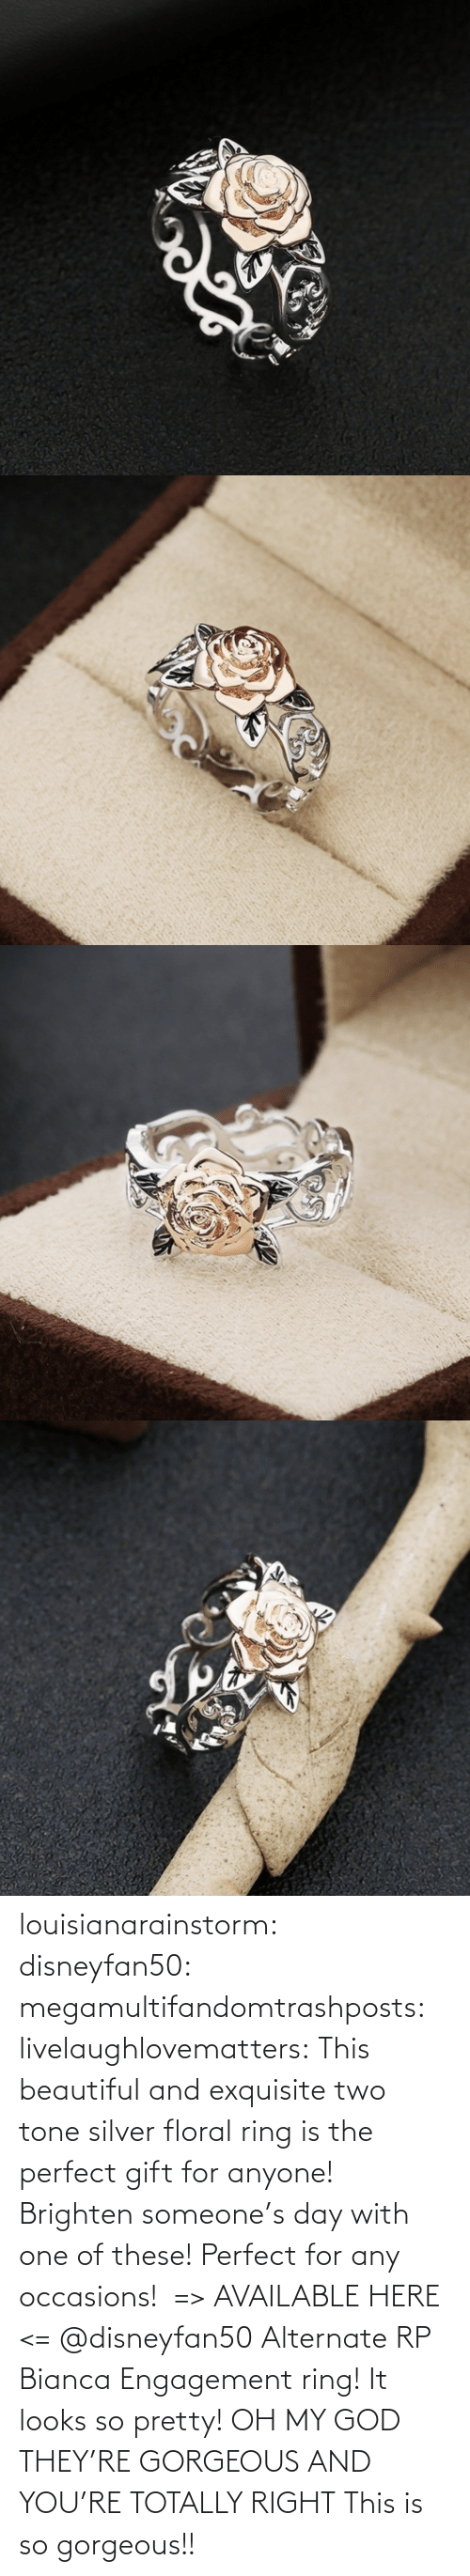 Silver: louisianarainstorm: disneyfan50:  megamultifandomtrashposts:  livelaughlovematters:  This beautiful and exquisite two tone silver floral ring is the perfect gift for anyone! Brighten someone's day with one of these! Perfect for any occasions!  => AVAILABLE HERE <=    @disneyfan50 Alternate RP Bianca Engagement ring! It looks so pretty!  OH MY GOD THEY'RE GORGEOUS AND YOU'RE TOTALLY RIGHT    This is so gorgeous!!